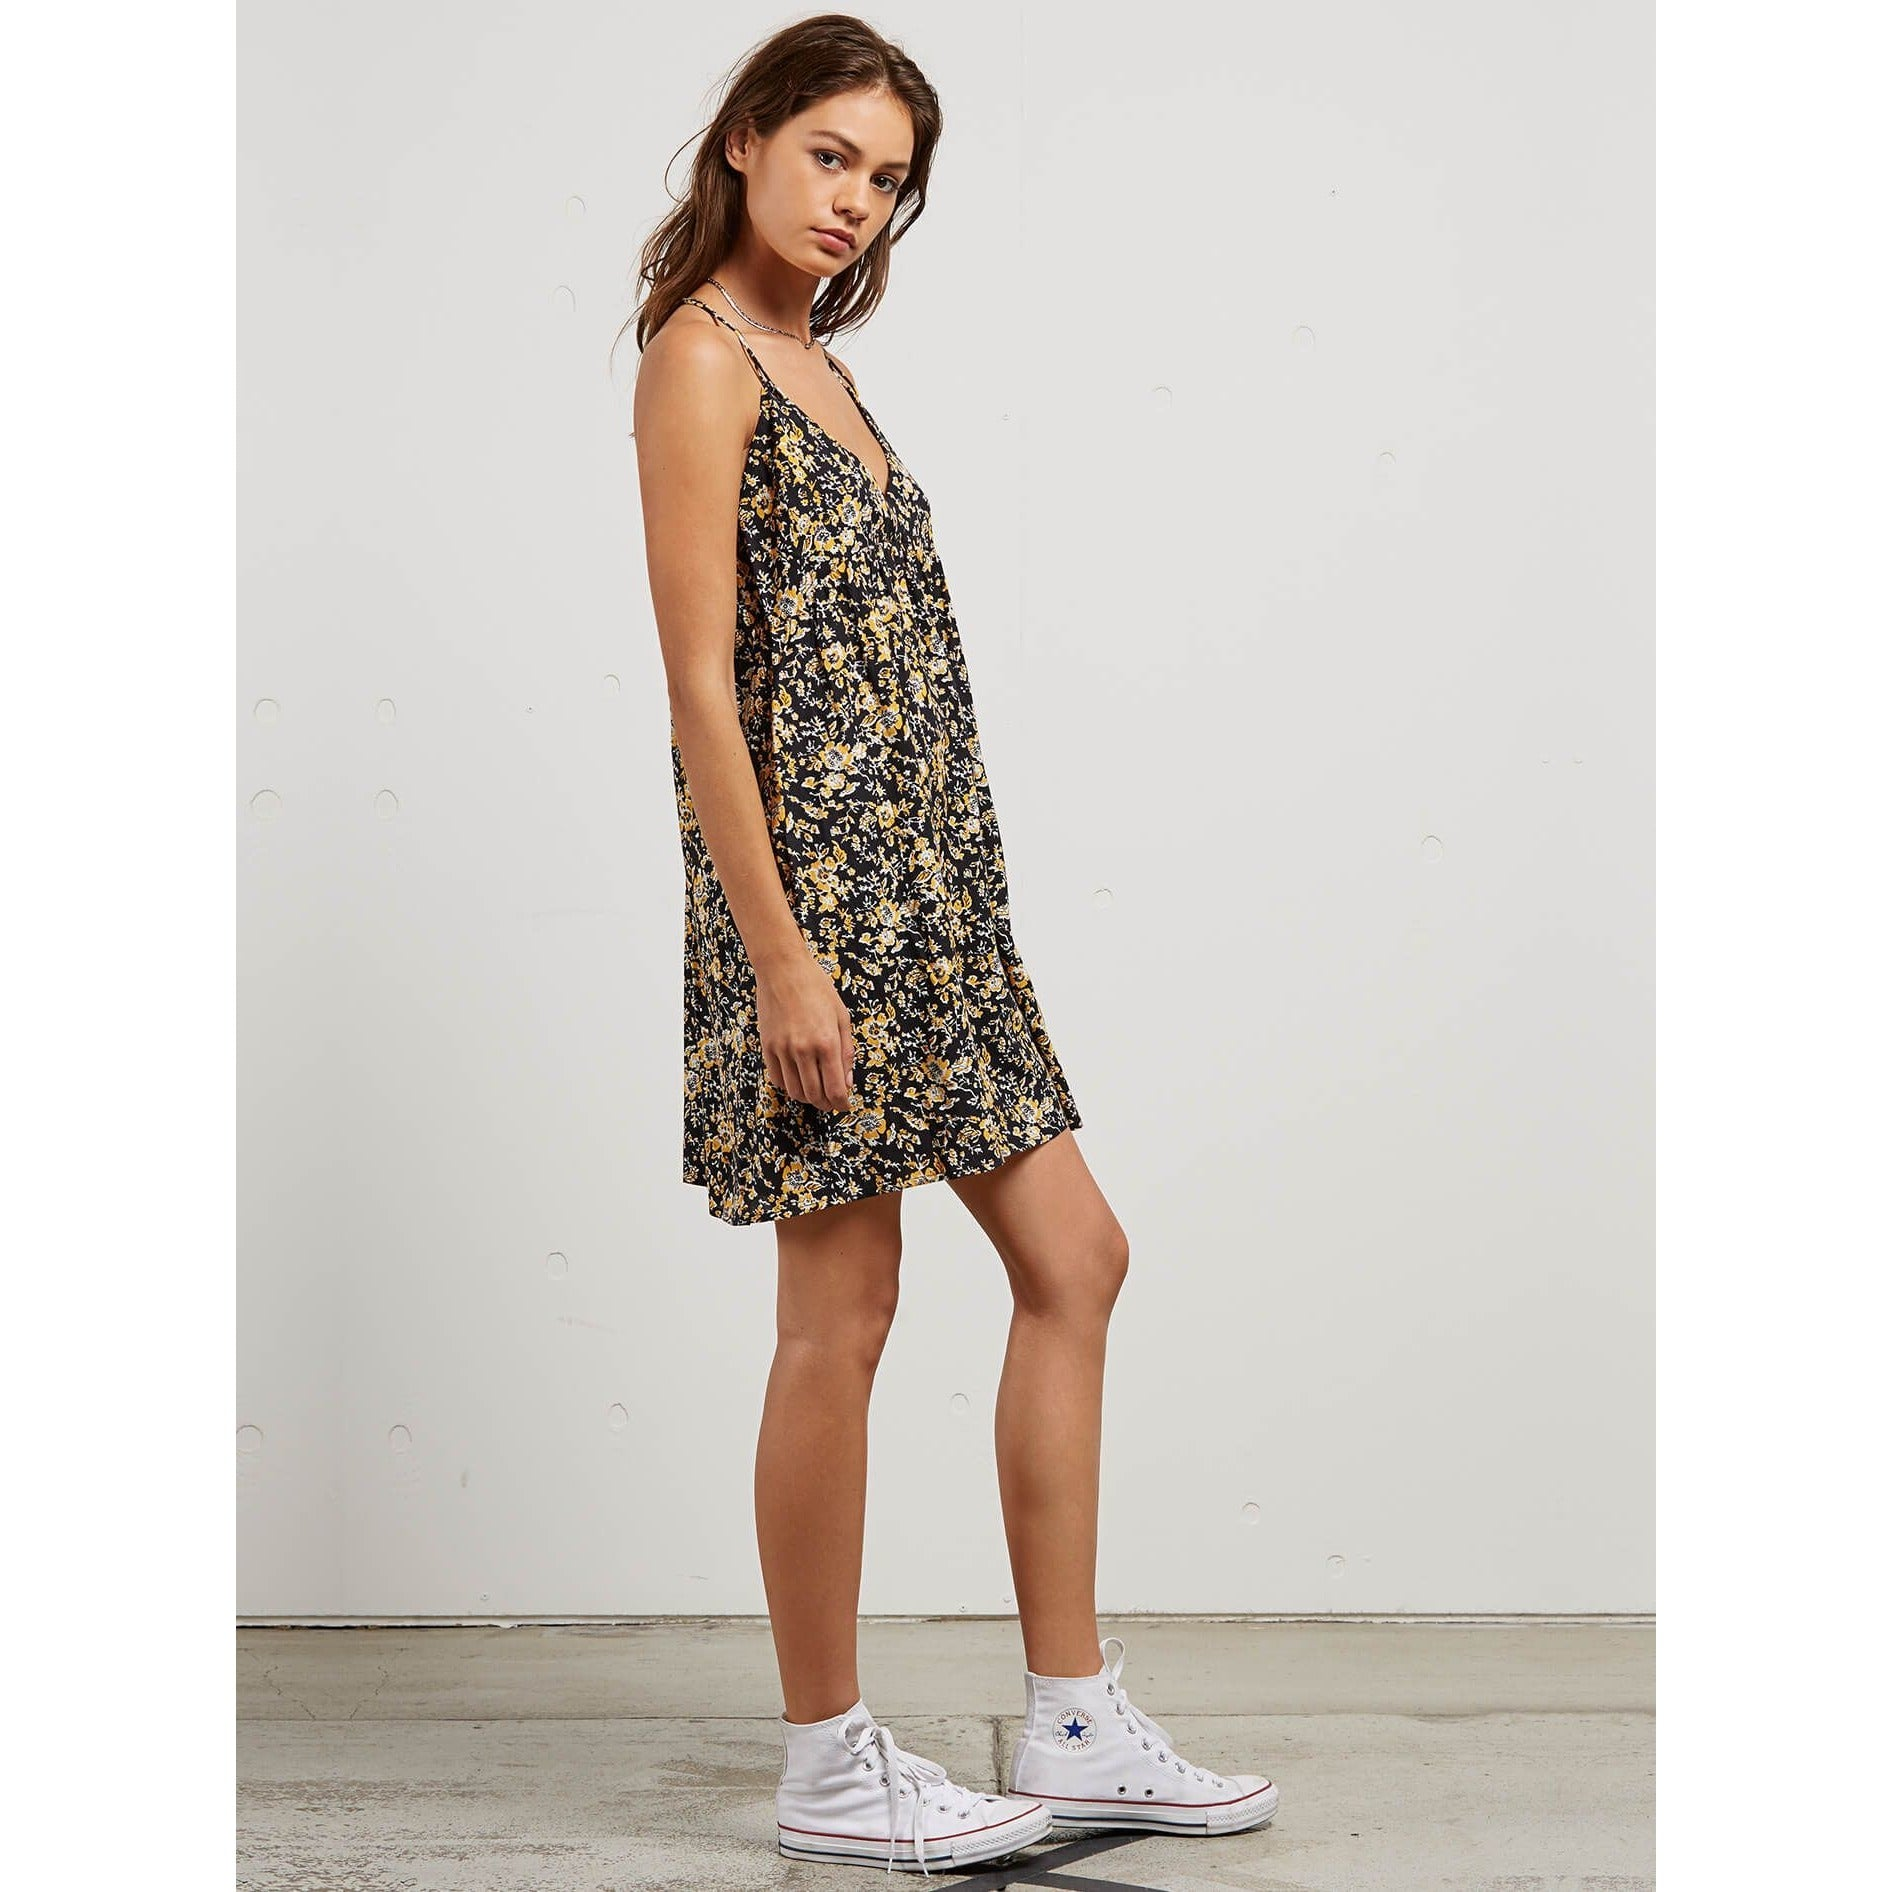 Volcom You Want This Dress - 88 Gear